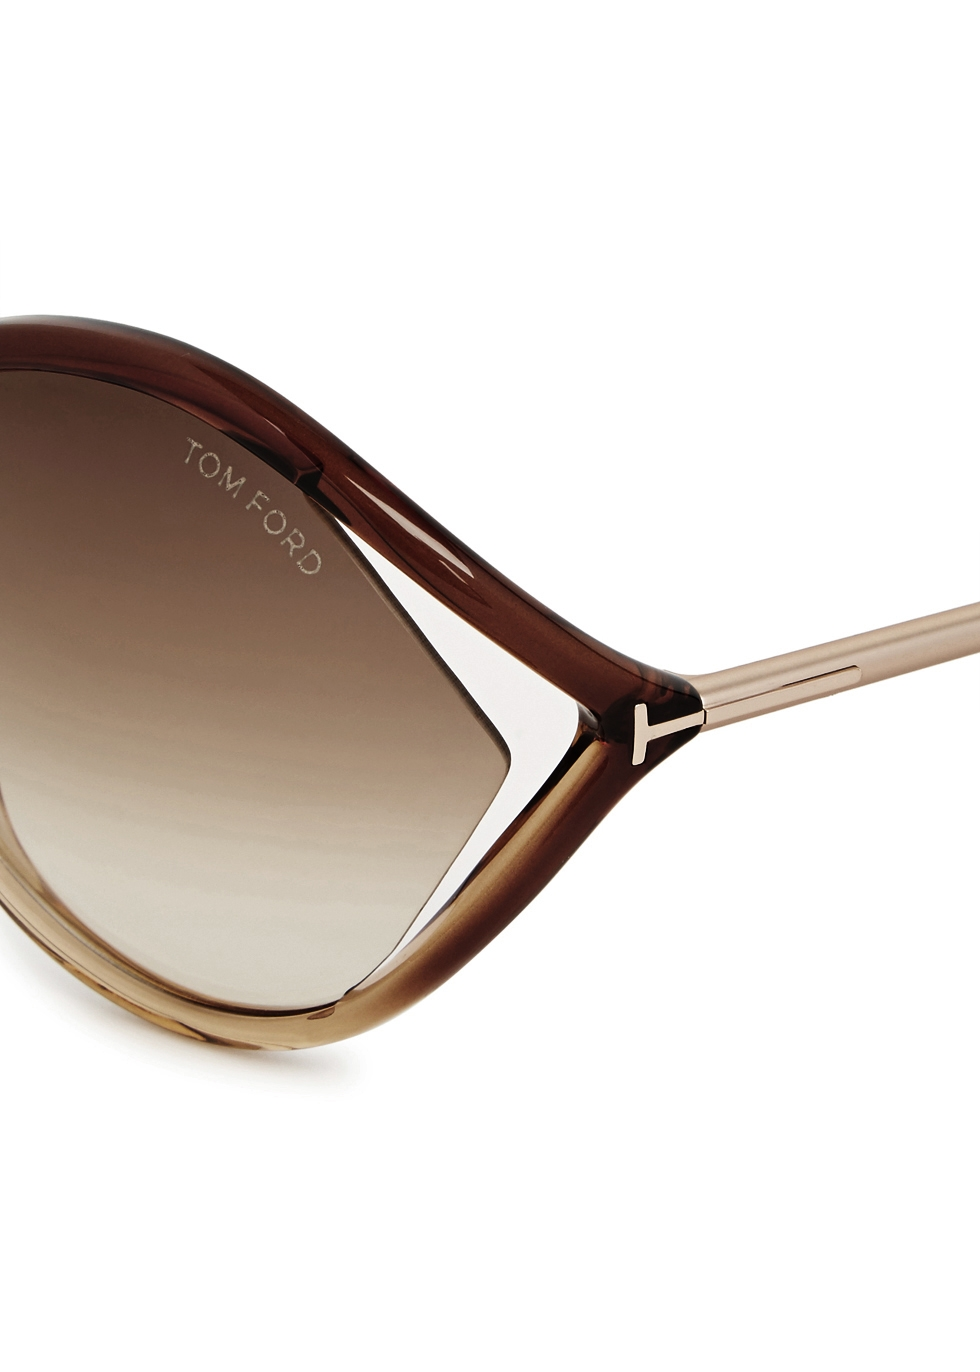 Liora light brown oversized sunglasses - Tom Ford Eyewear